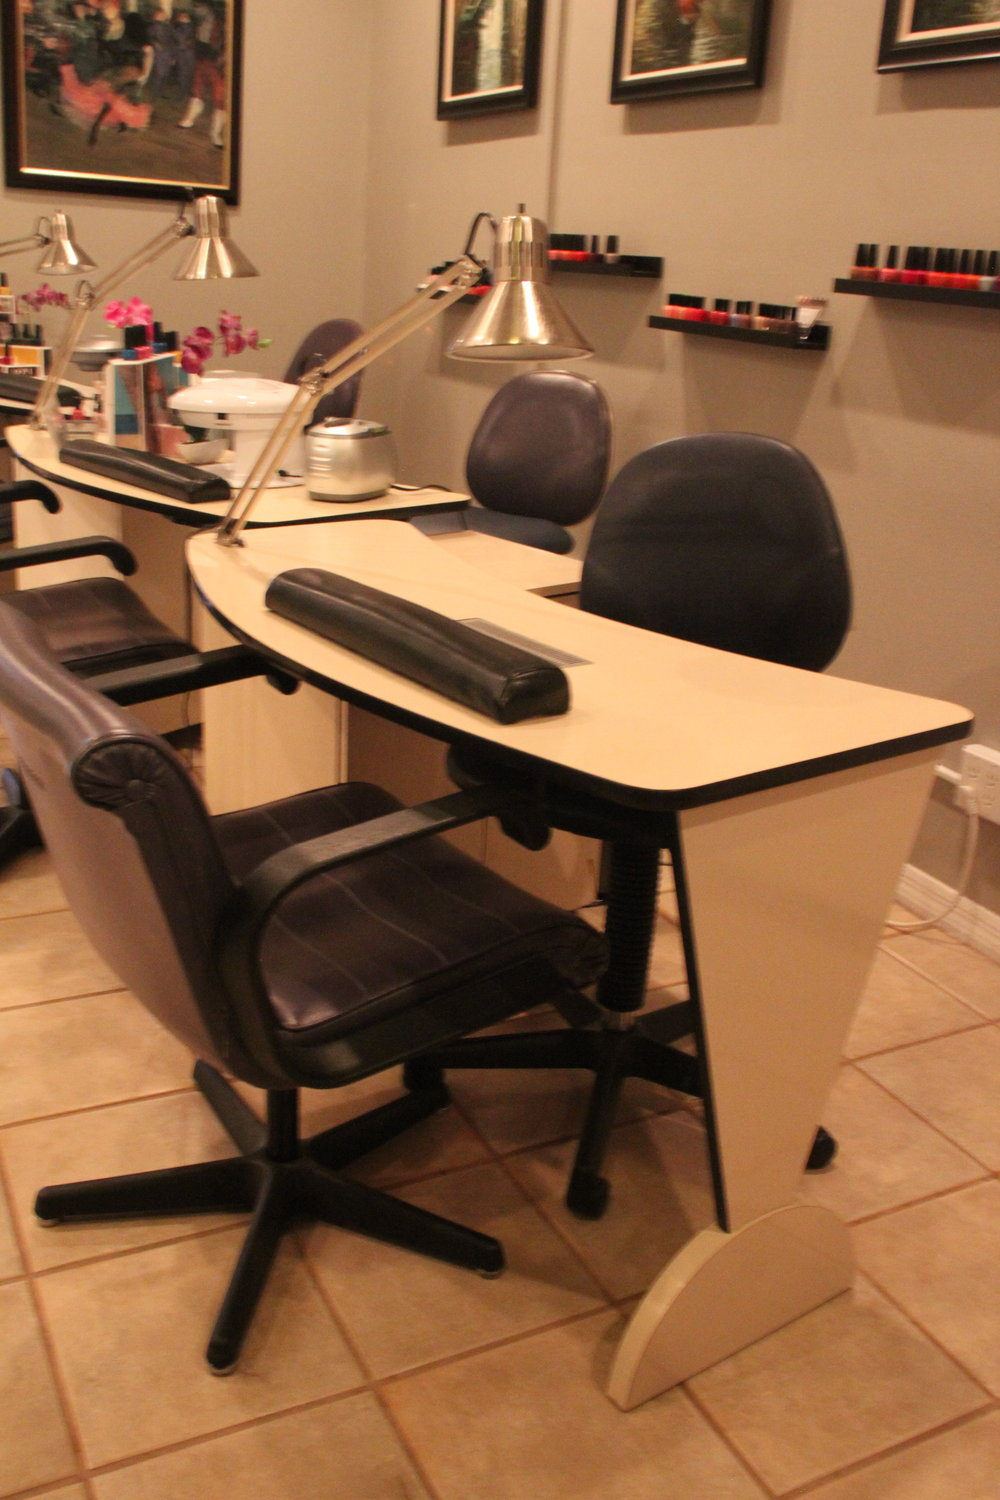 Complete Manicure Station - $200, Includes: Tech chair, Client chair, lamp, and station